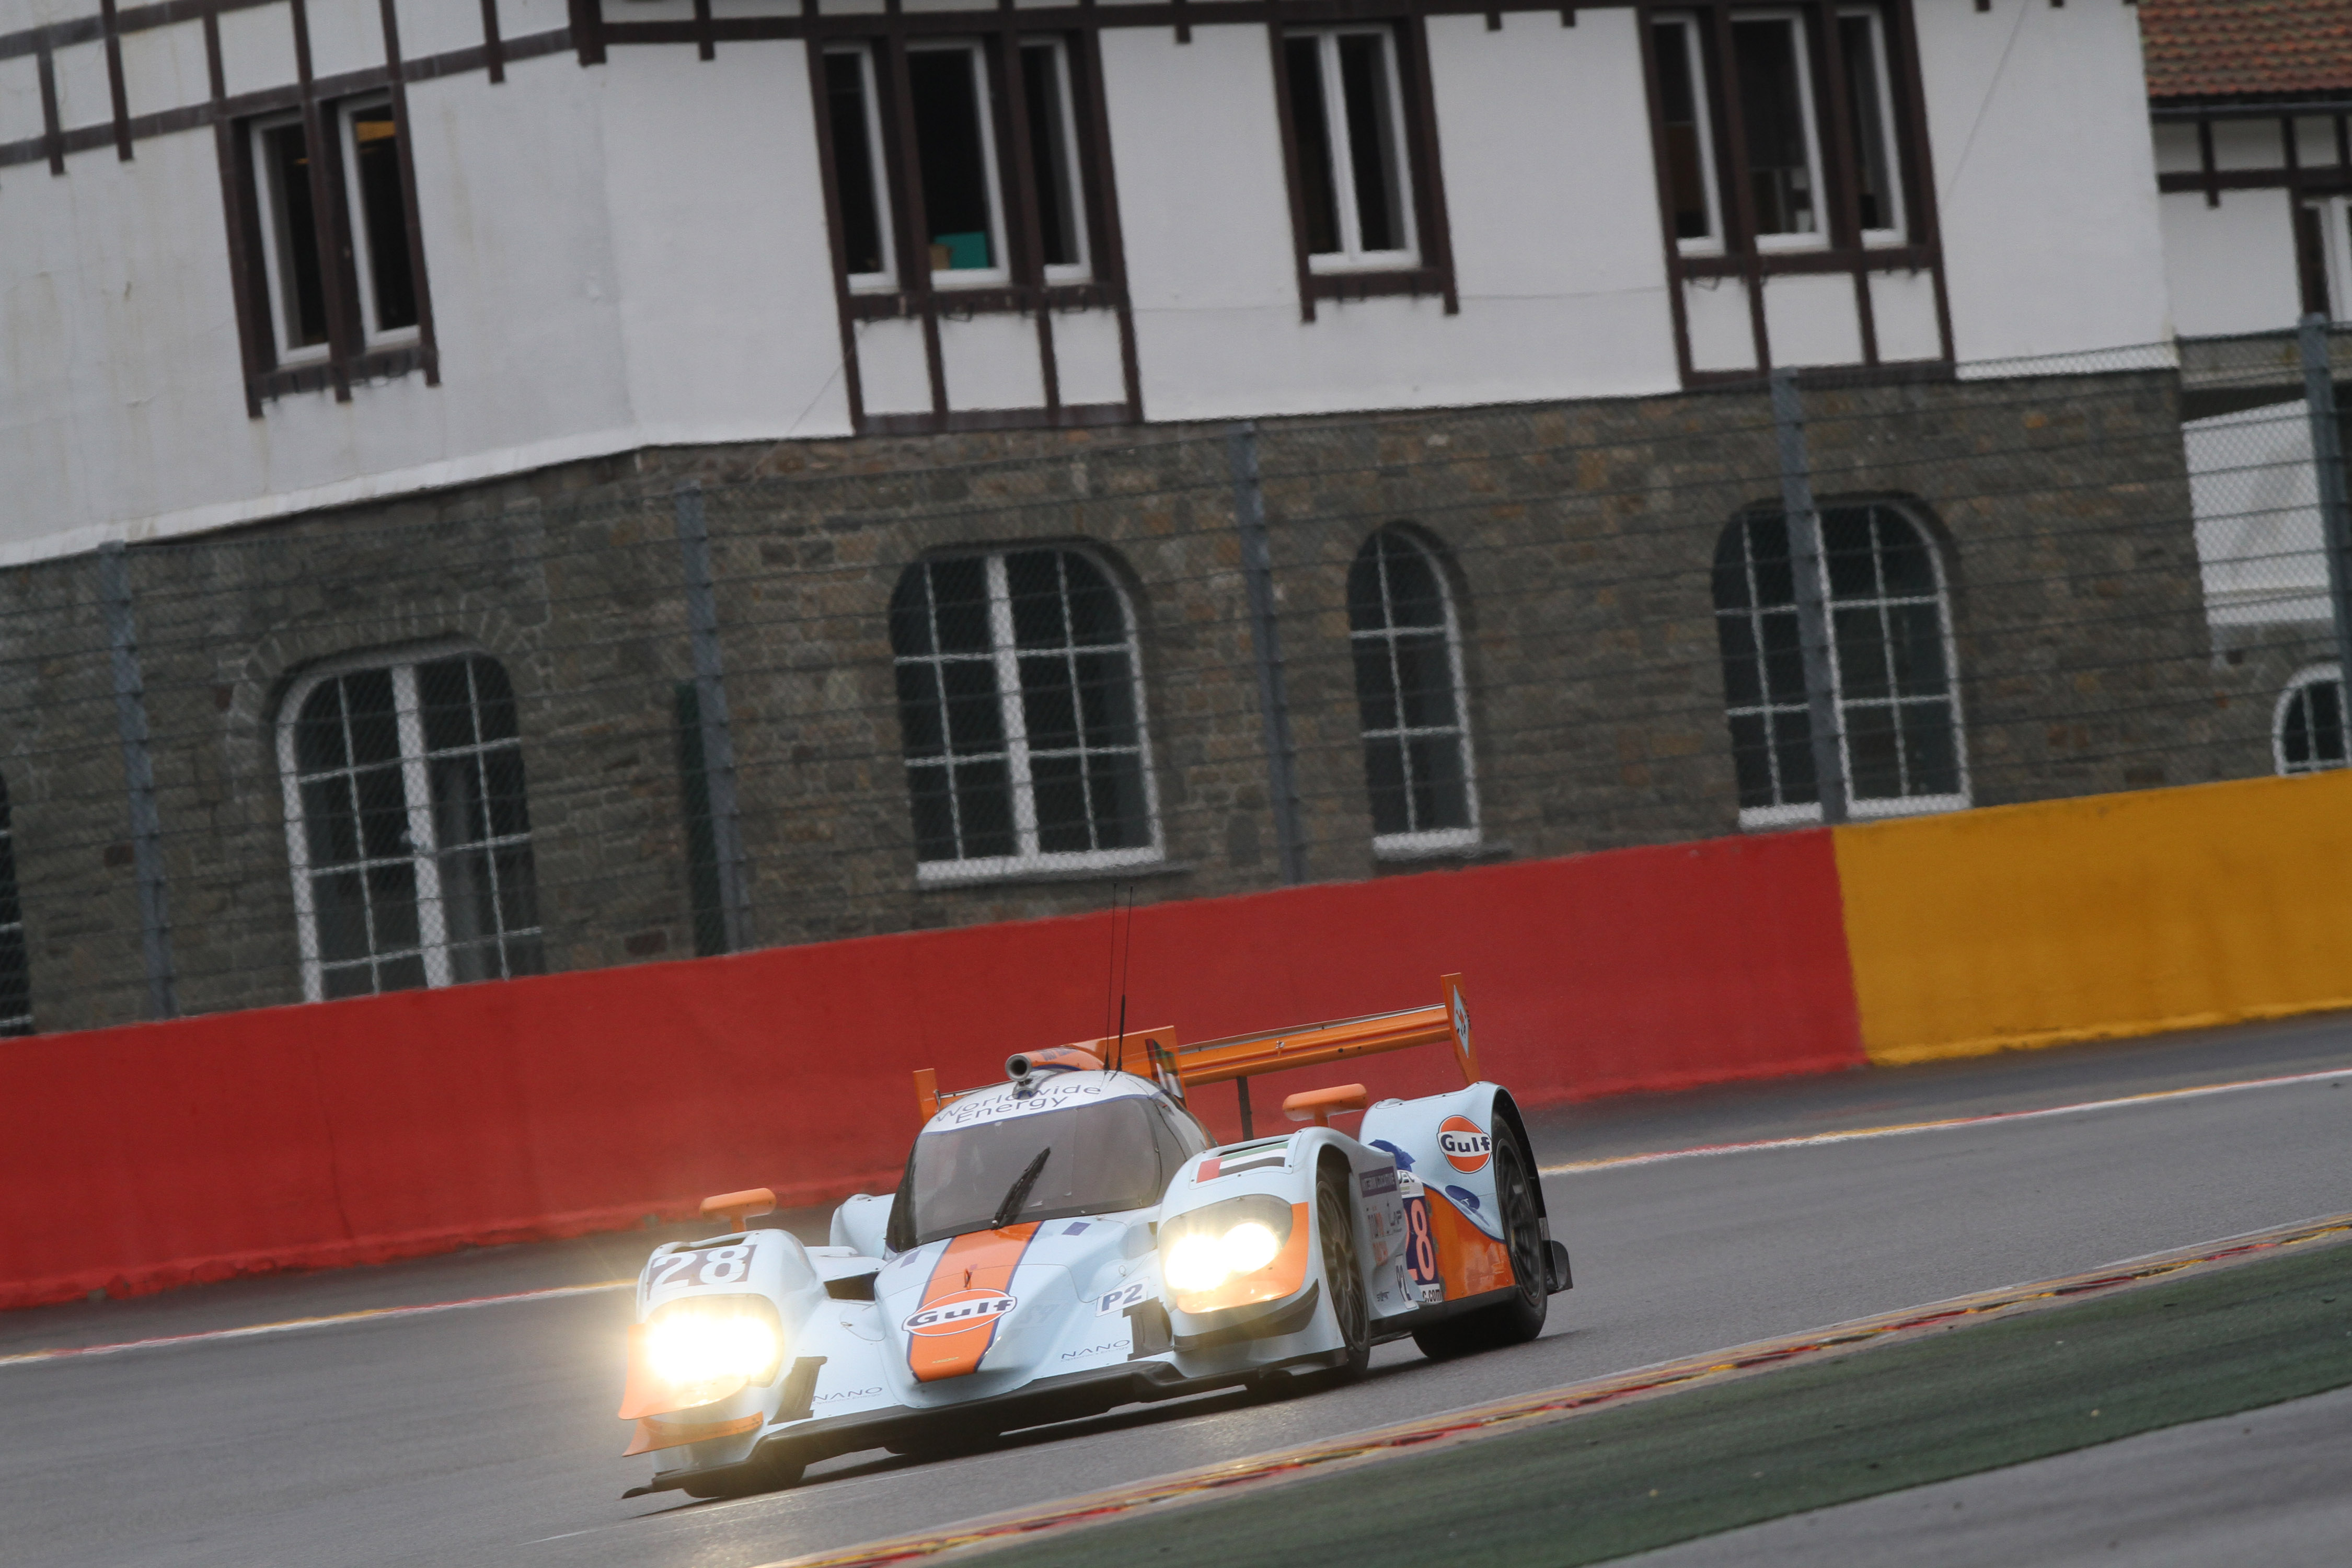 Motor Racing Wec 6 Hours Of Spa Francorchamps Race Day, Spa Francorchamps Belgium